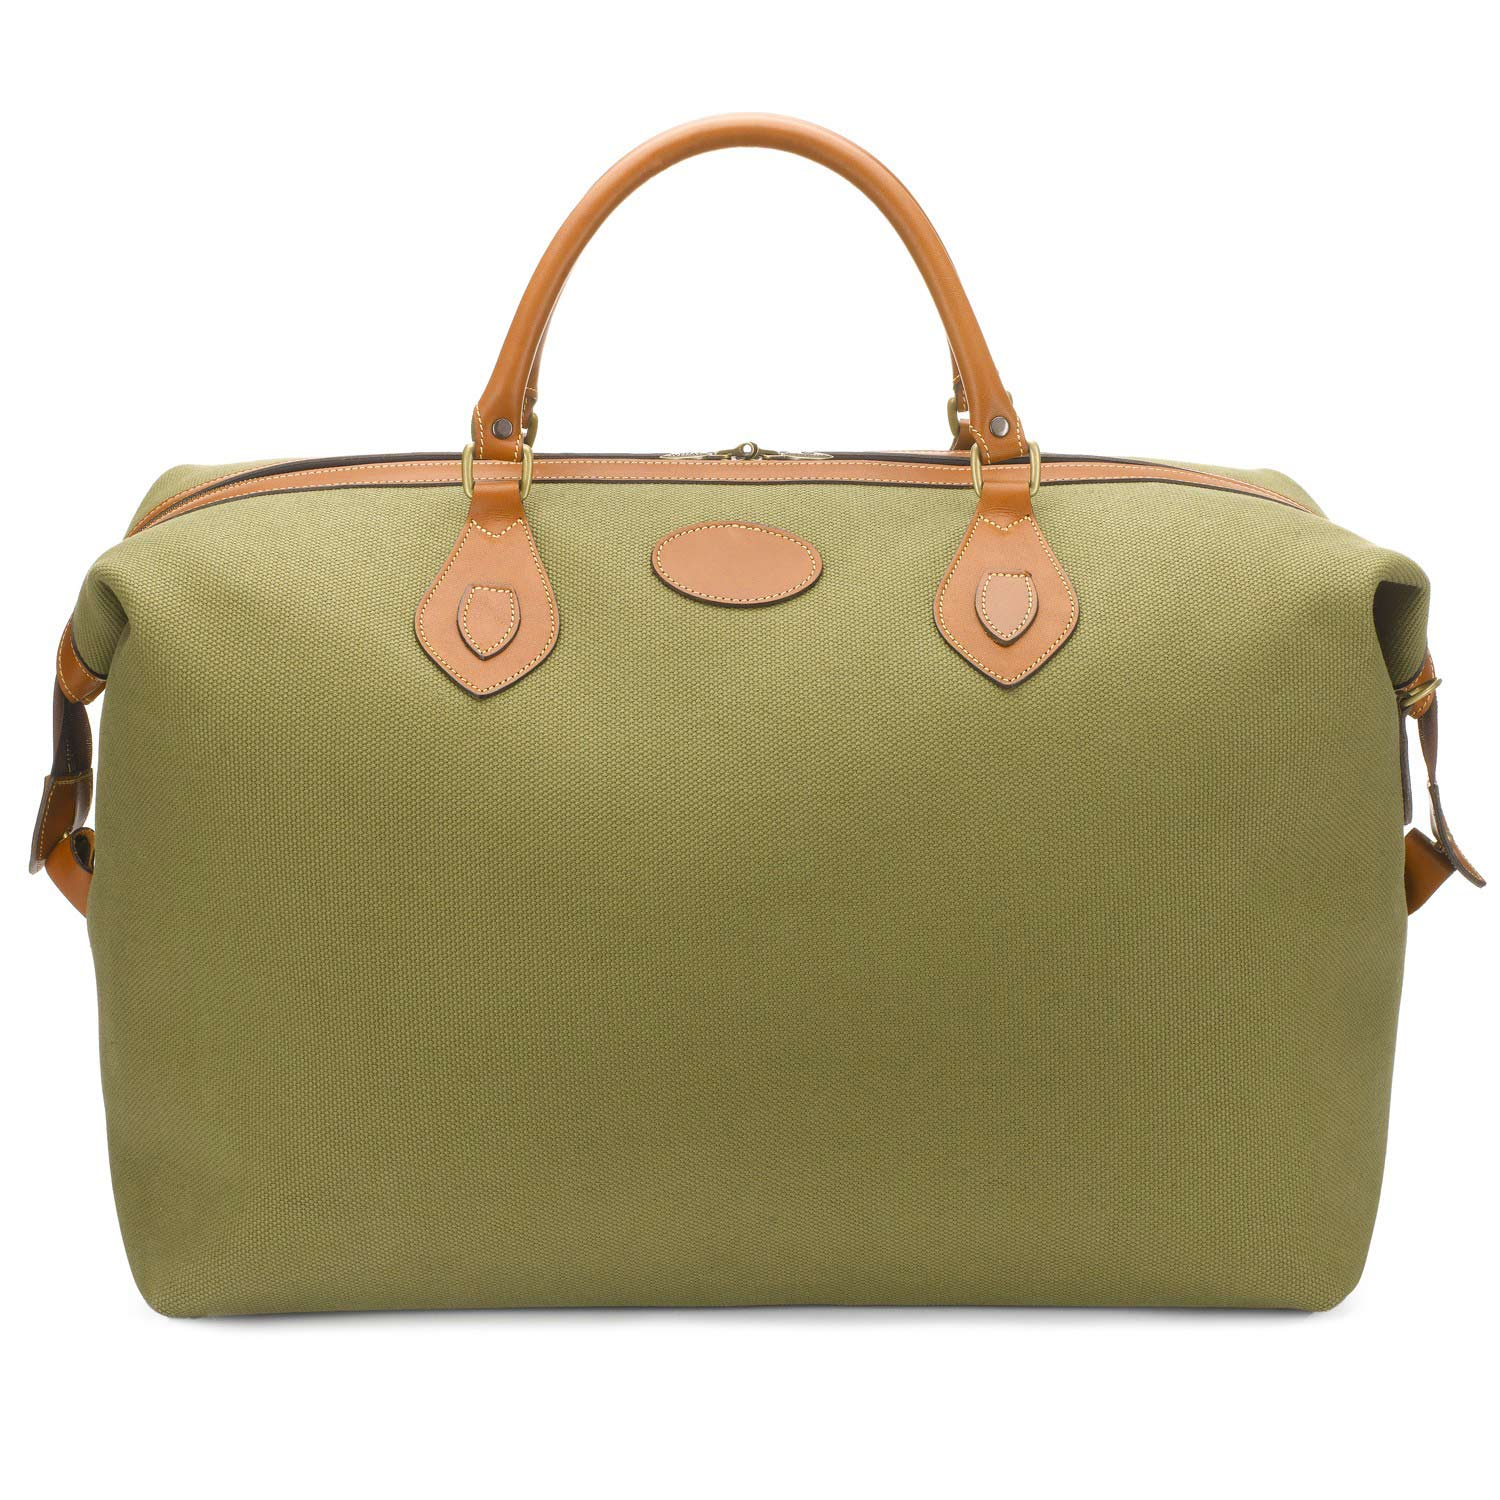 Tusting Explorer Holdall (Large) in Olive Canvas and Tan Trim Leather